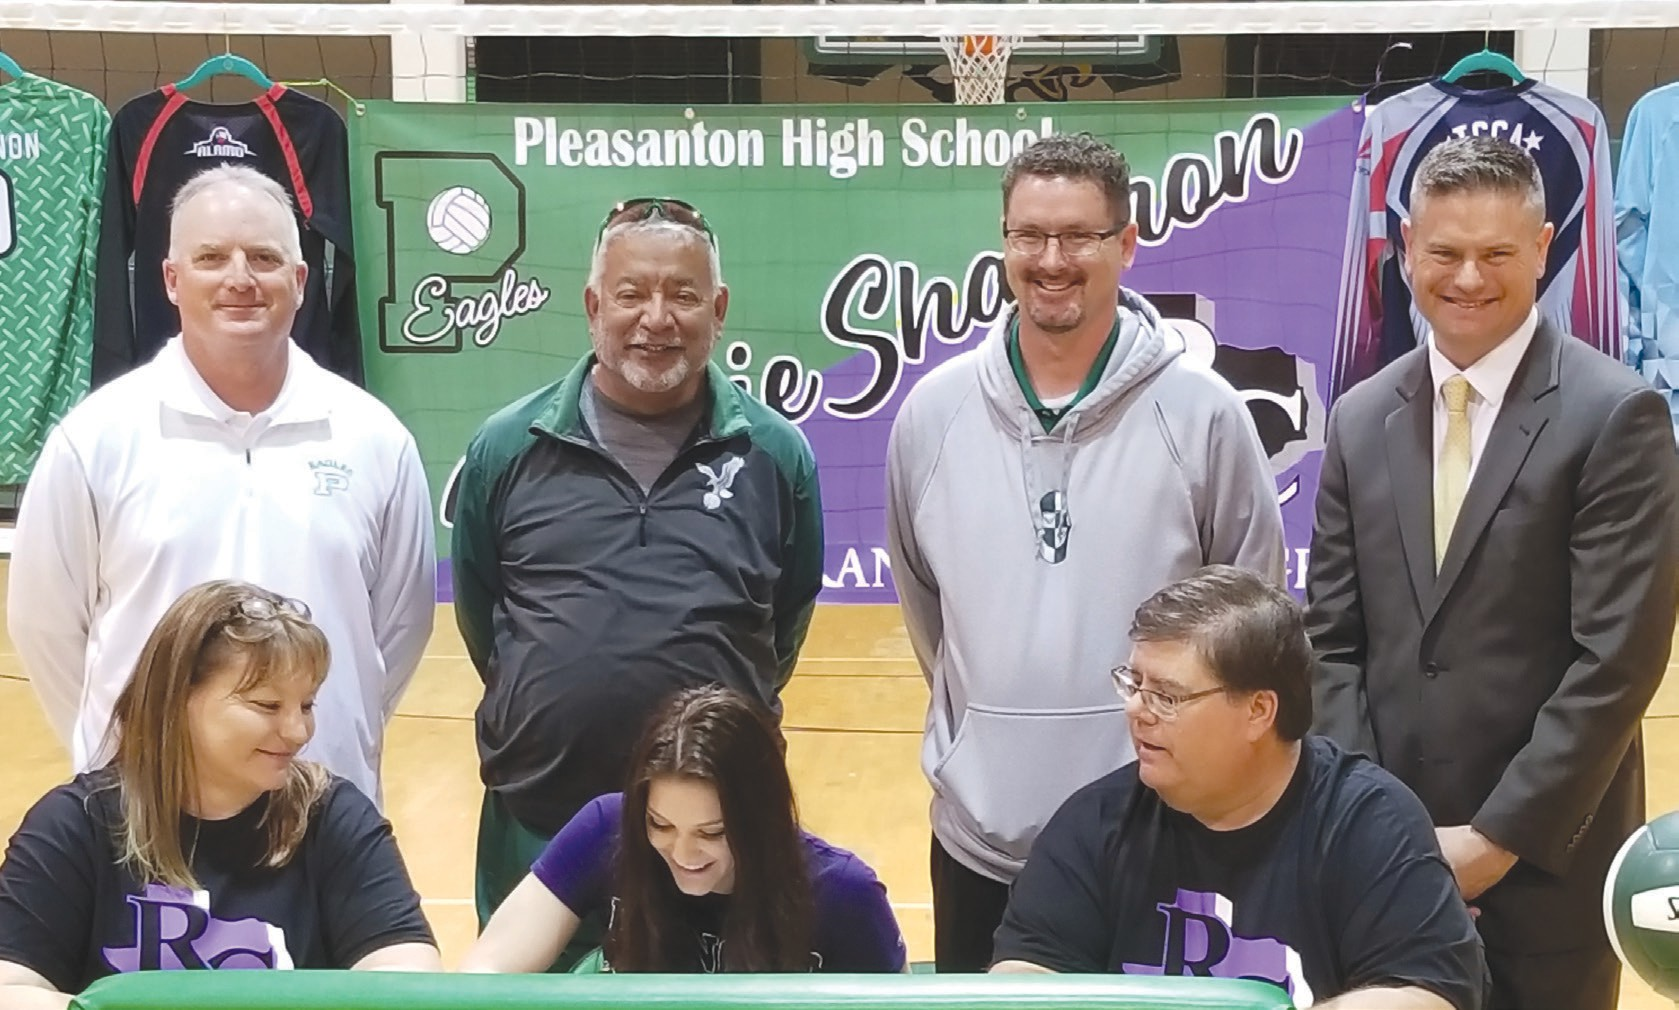 Shannon Set To Move Up To Ranger College Volleyball Pleasanton Express